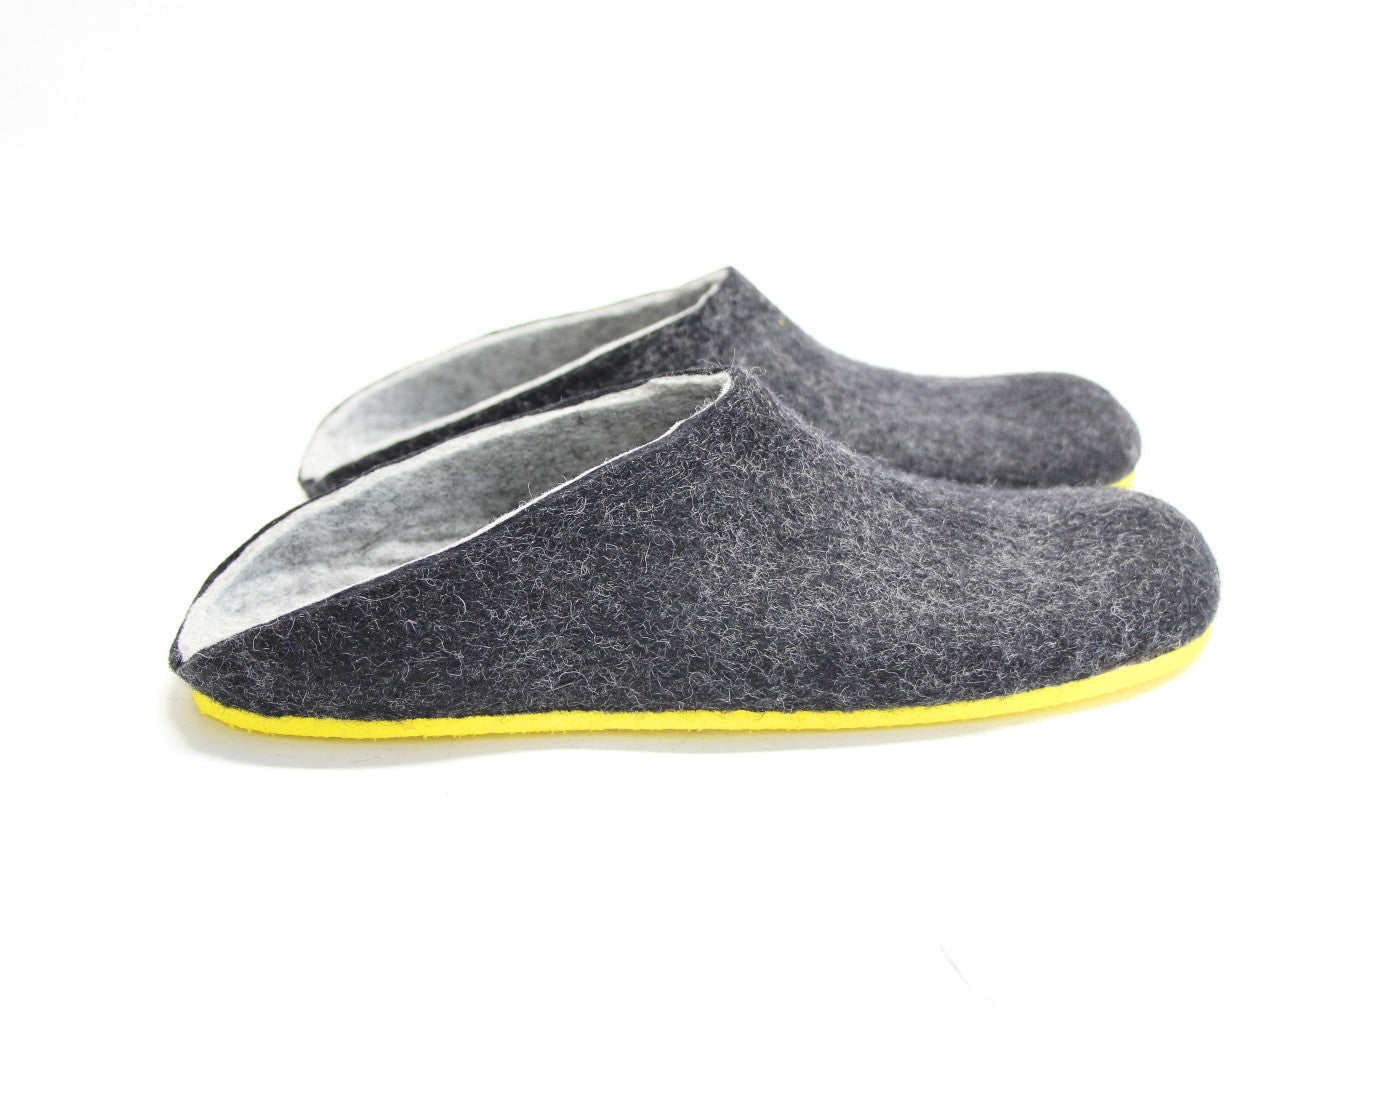 Mens Felt Clogs Charcoal Contrast Sole - Wool Walker  - 1